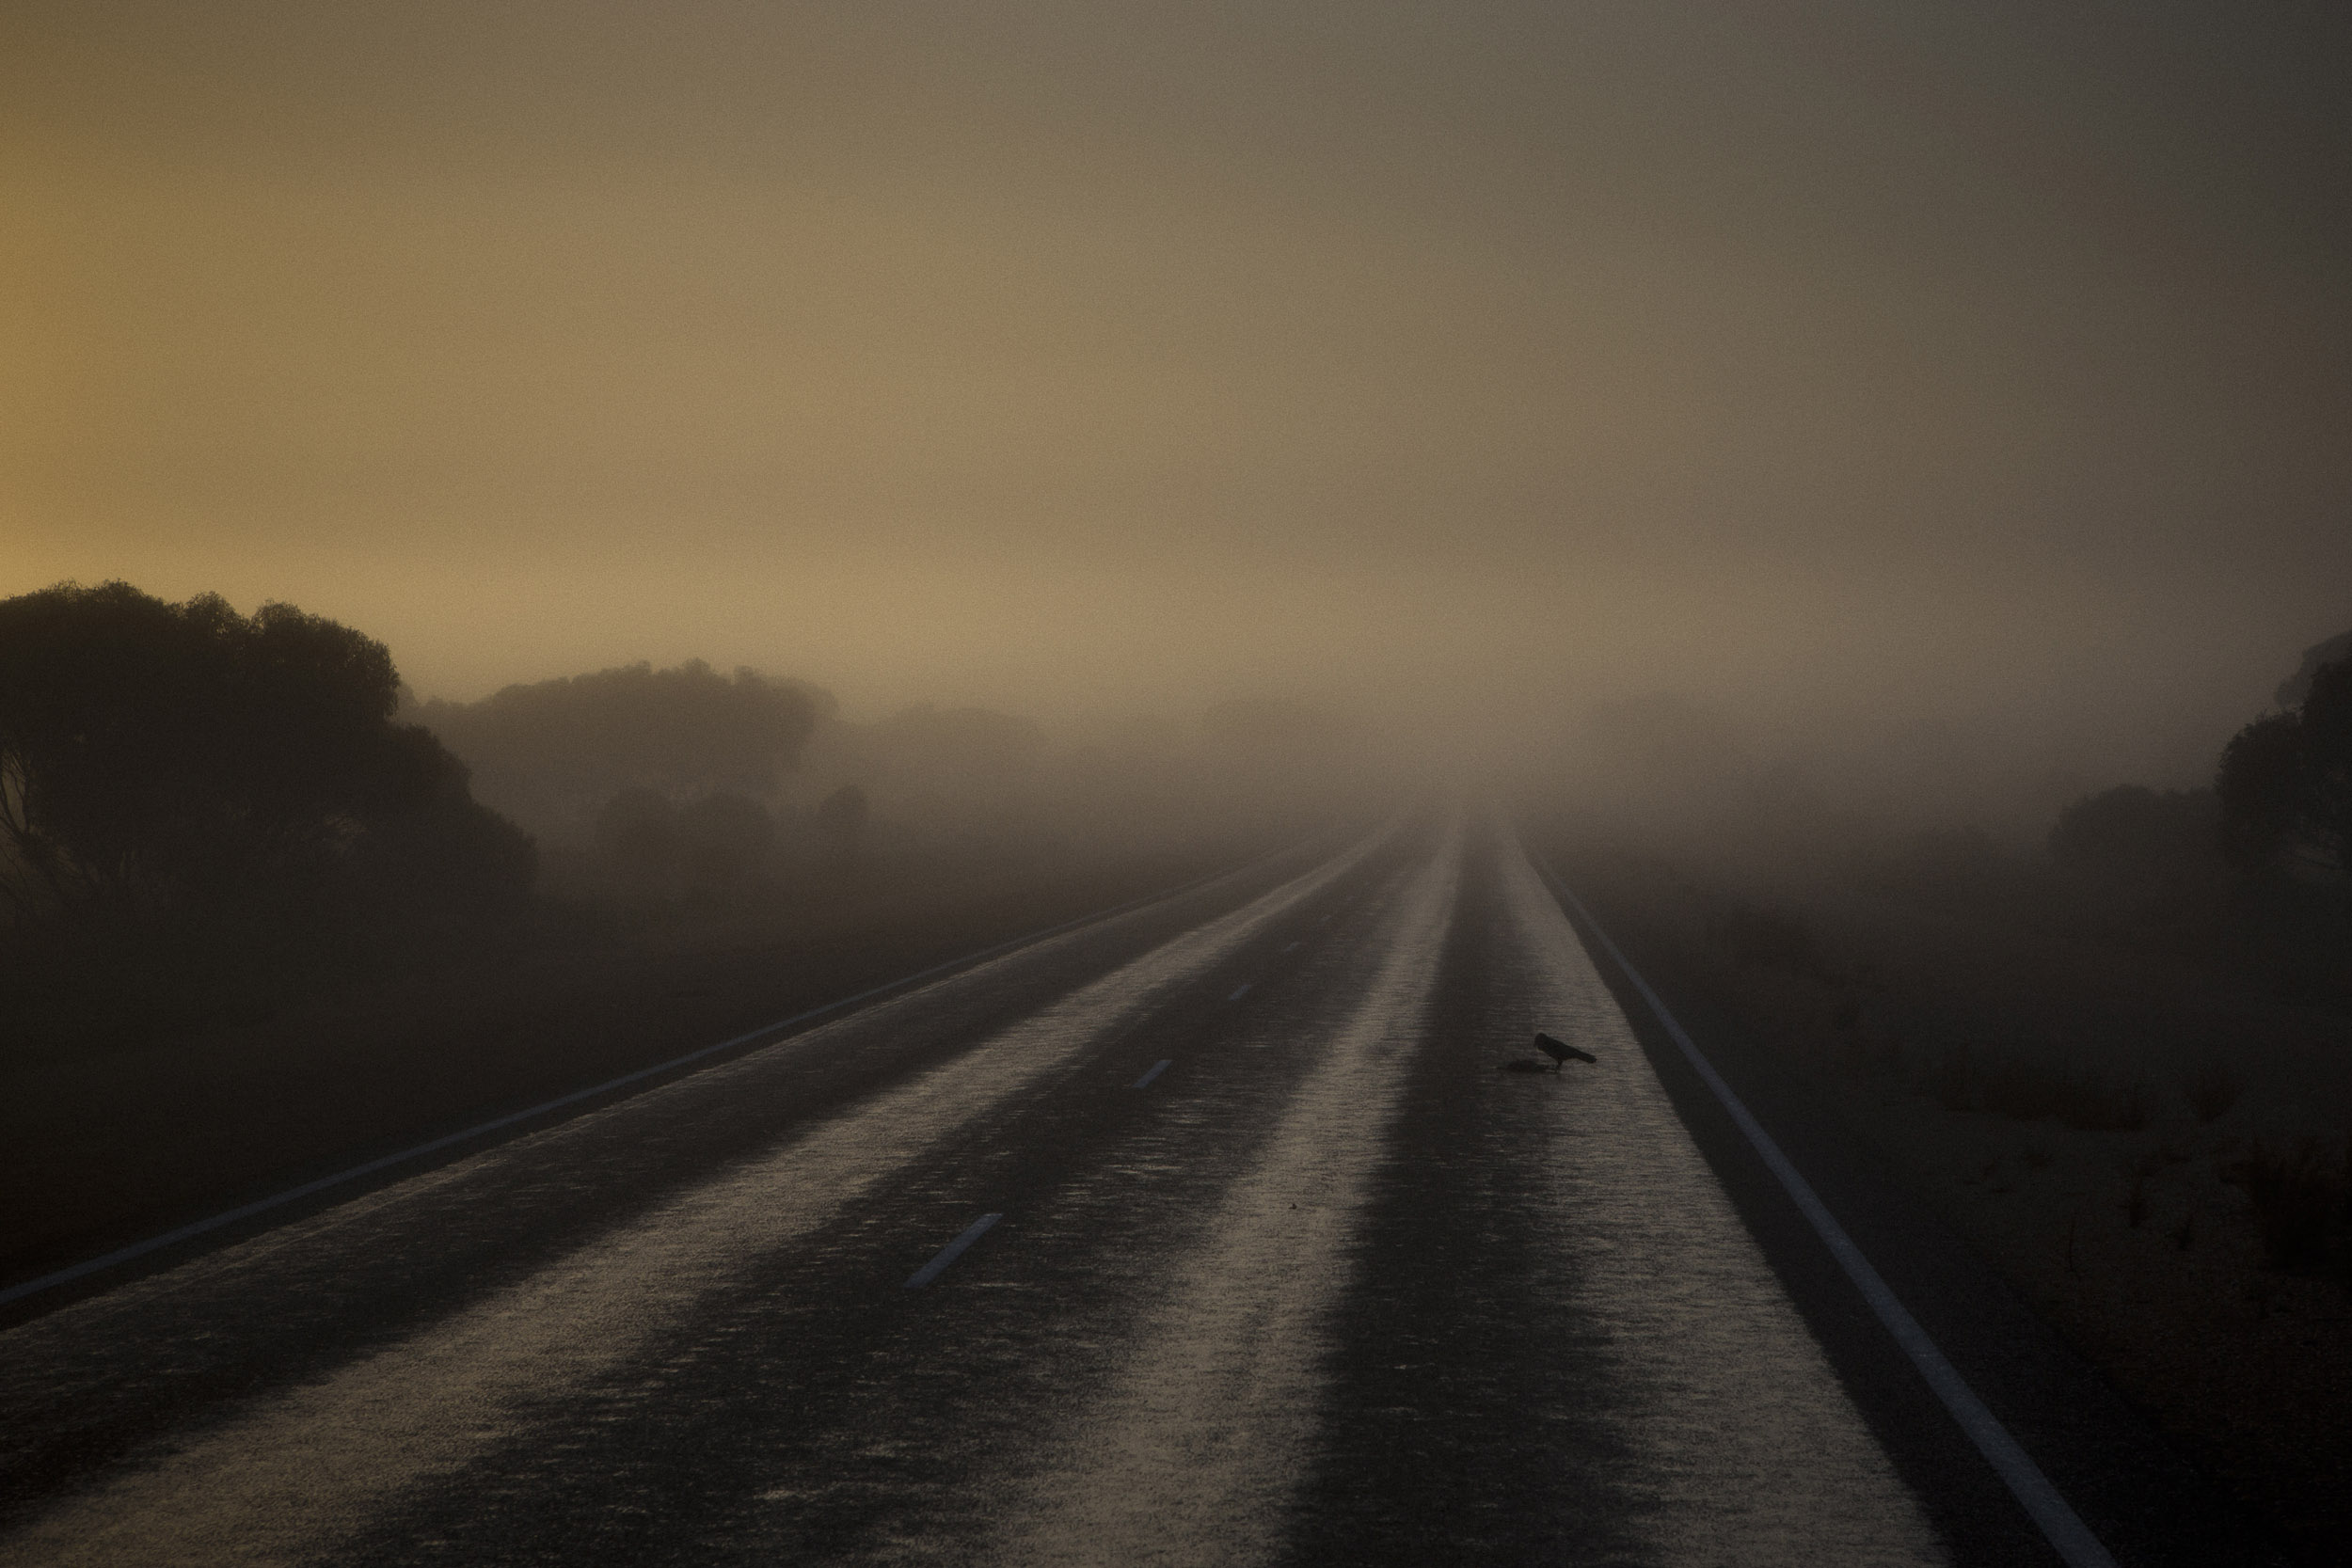 A crow picks at road-kill in the early morning fog on the Eyre highway, Caiguna, Western Australia.